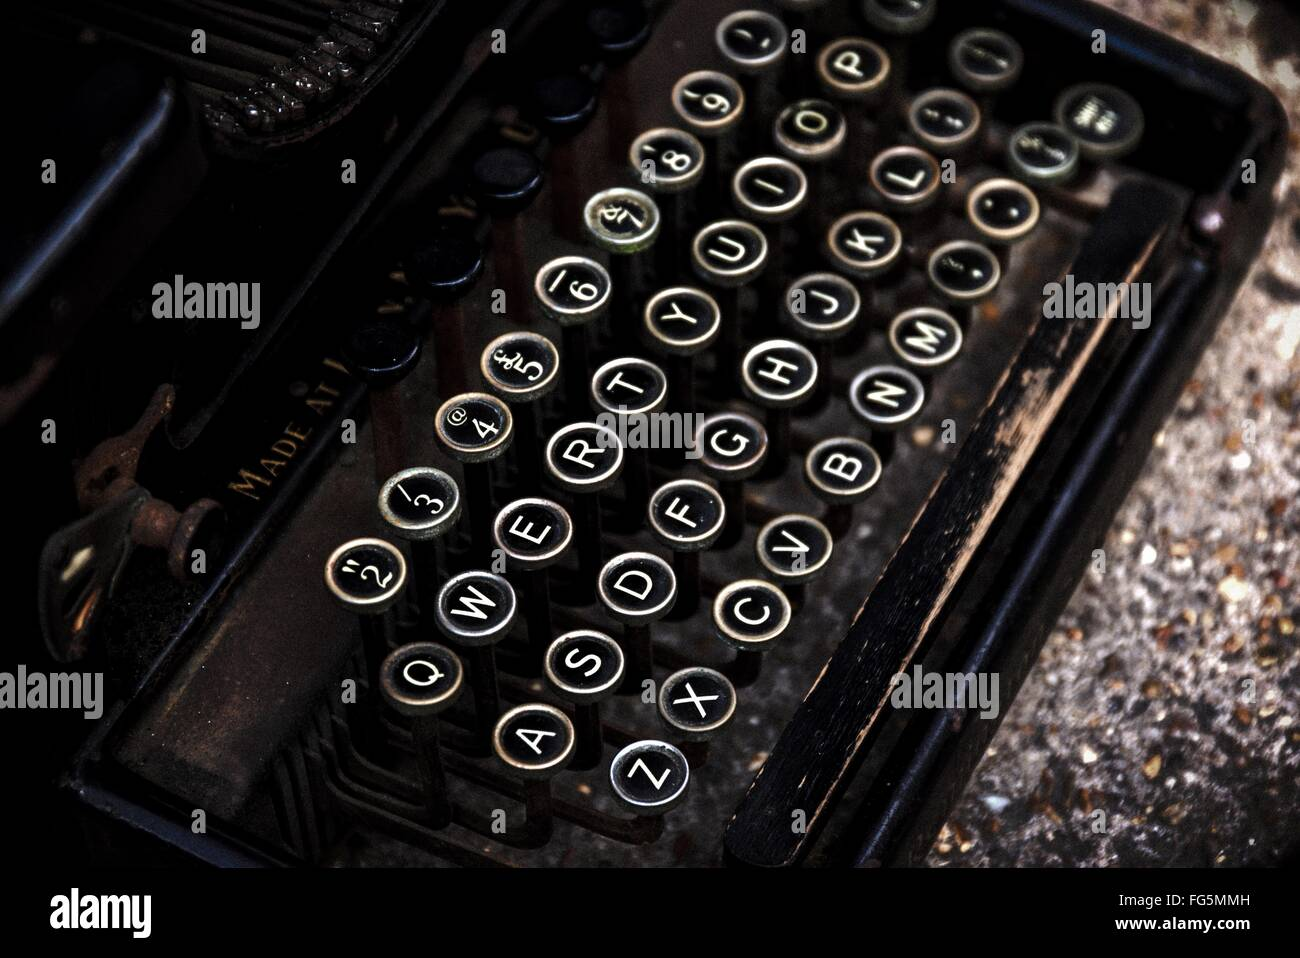 High Angle View Of Old Typewriter - Stock Image